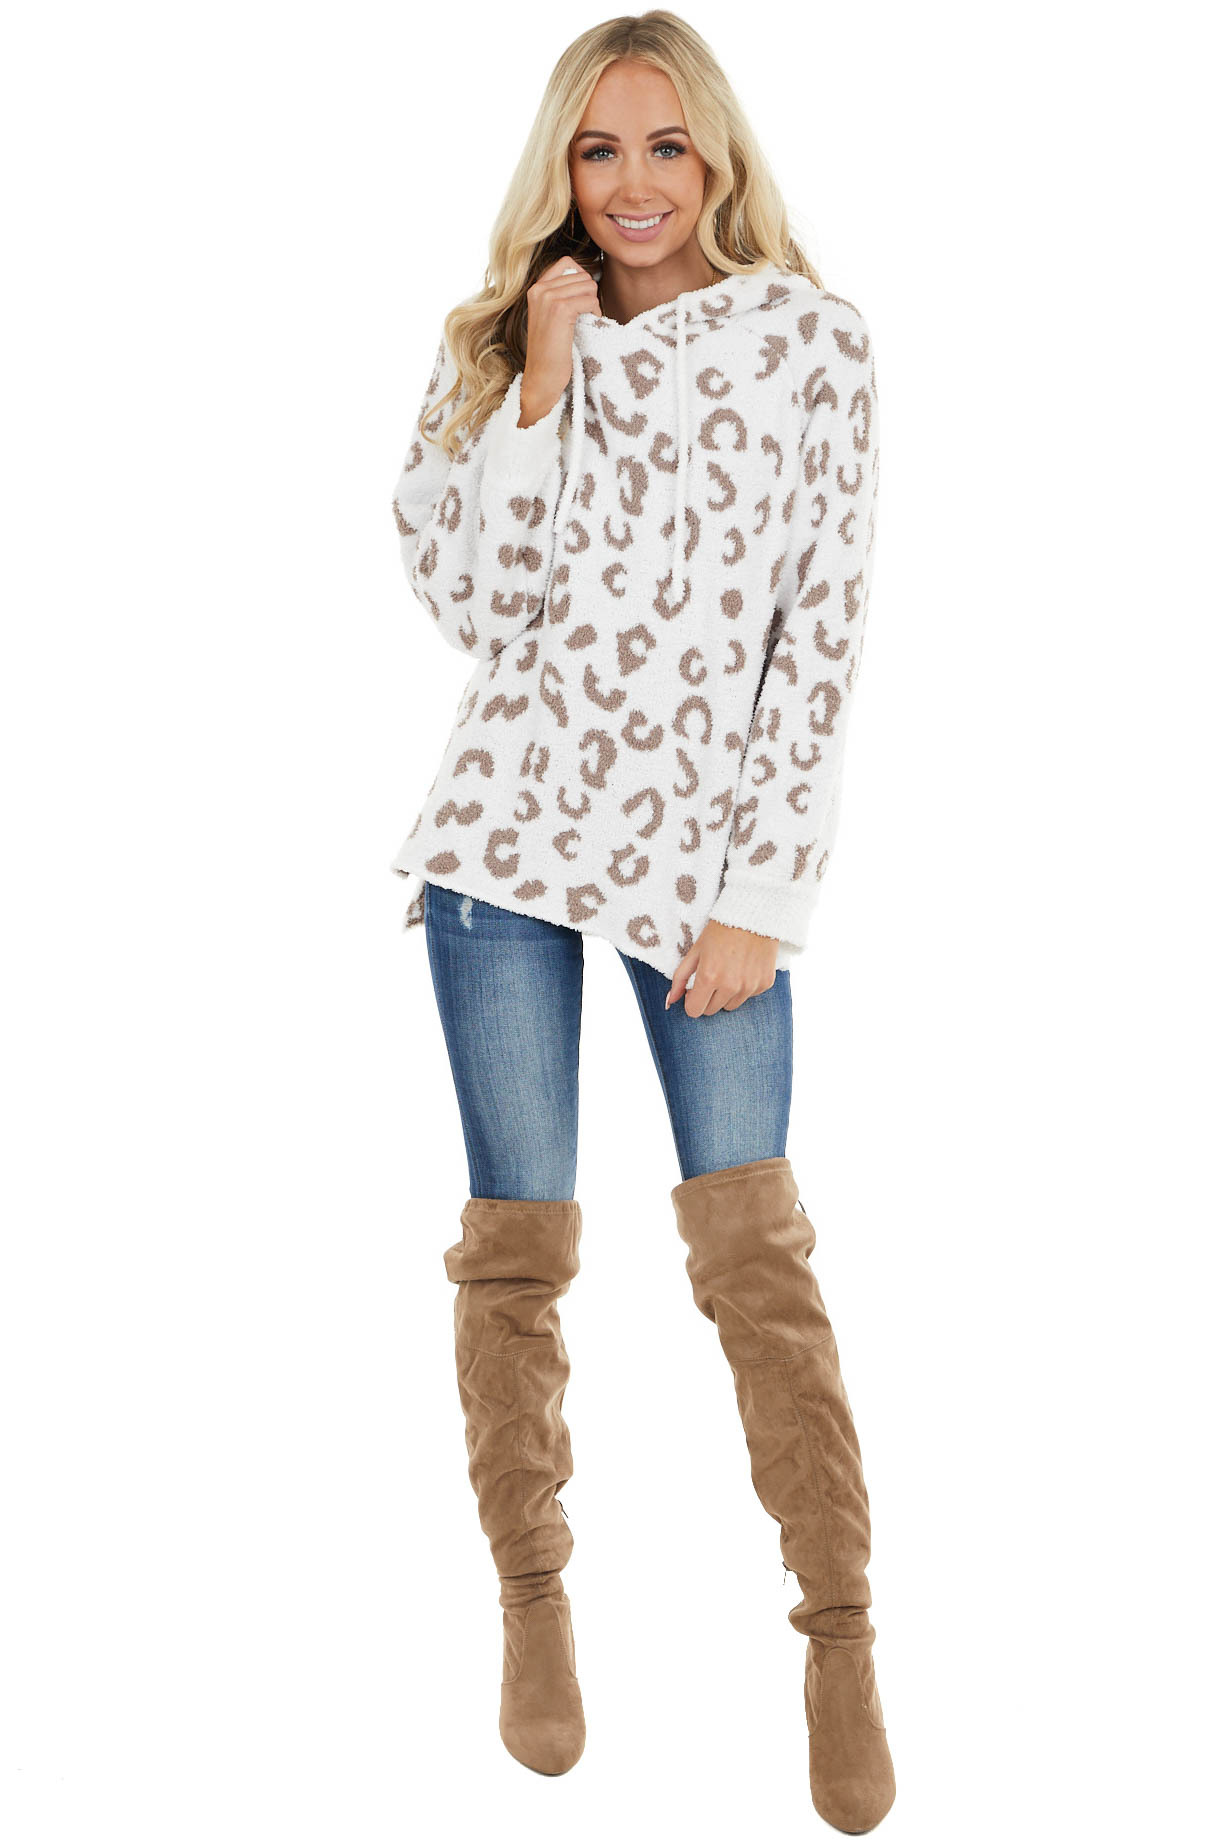 Off White and Taupe Leopard Print Super Soft Fuzzy Hoodie